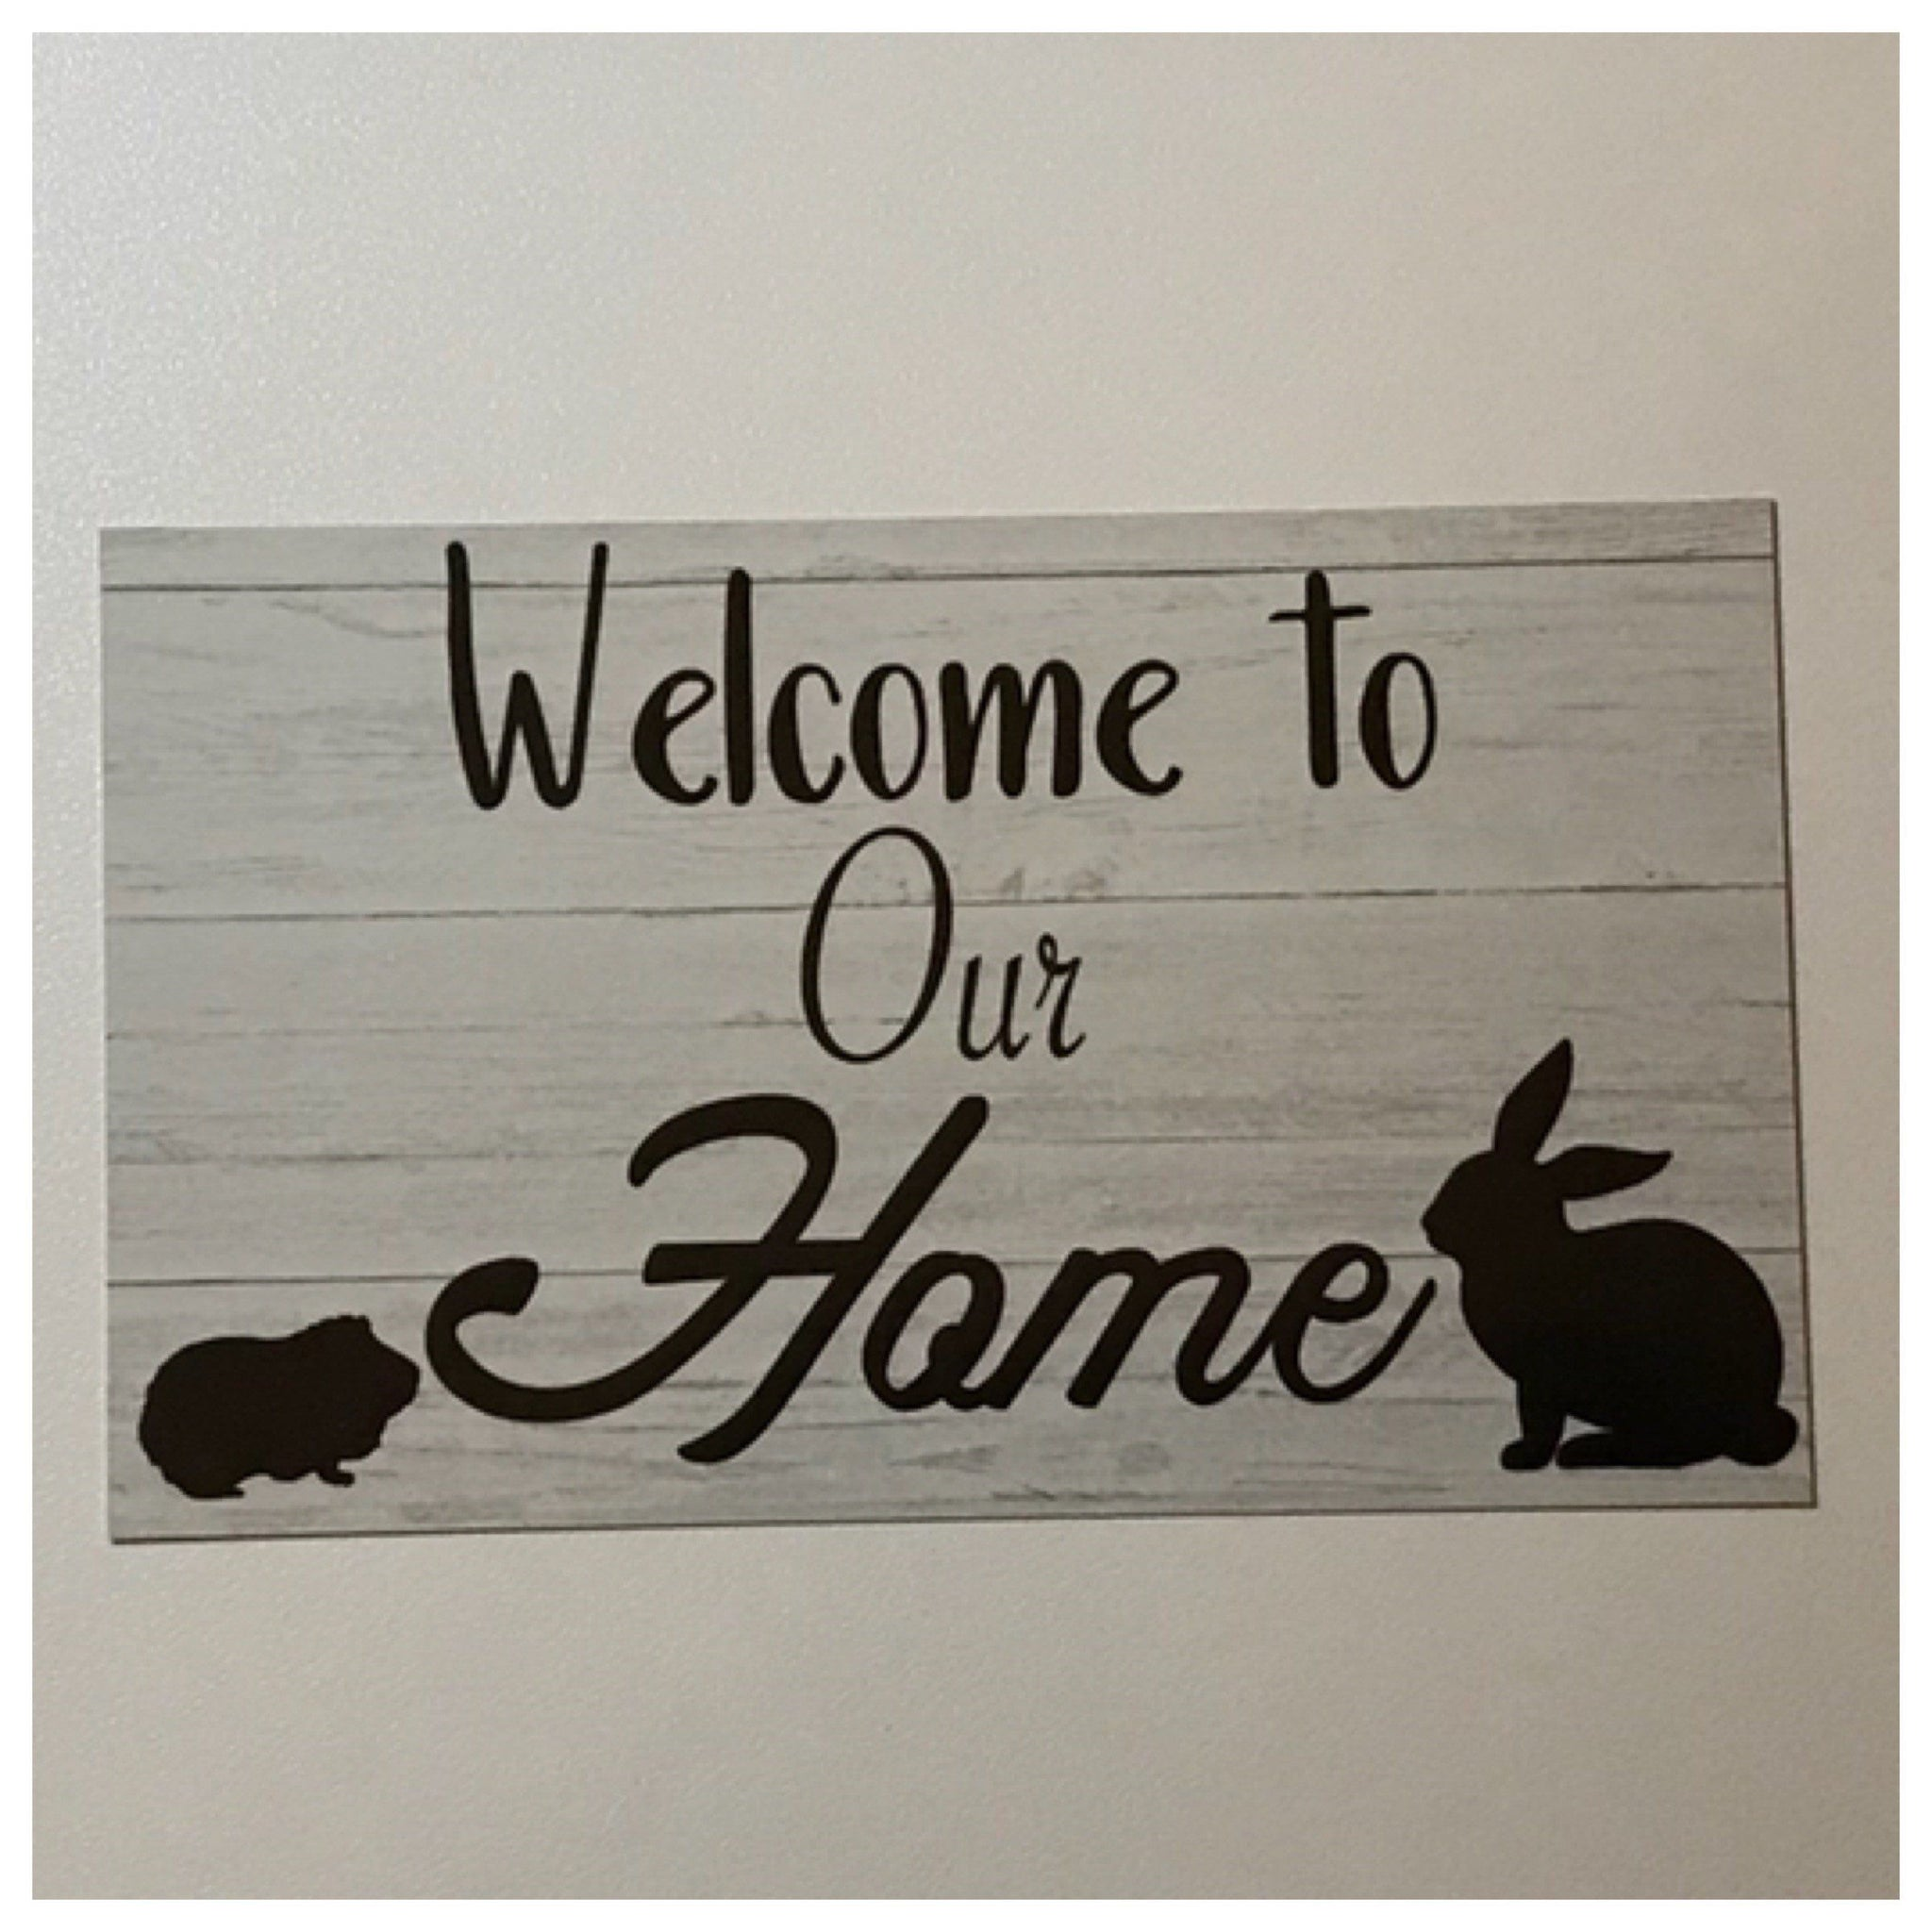 Welcome To Our Home Rabbit & Guinea Pig Sign Wall Plaque or Hanging Plaques & Signs The Renmy Store